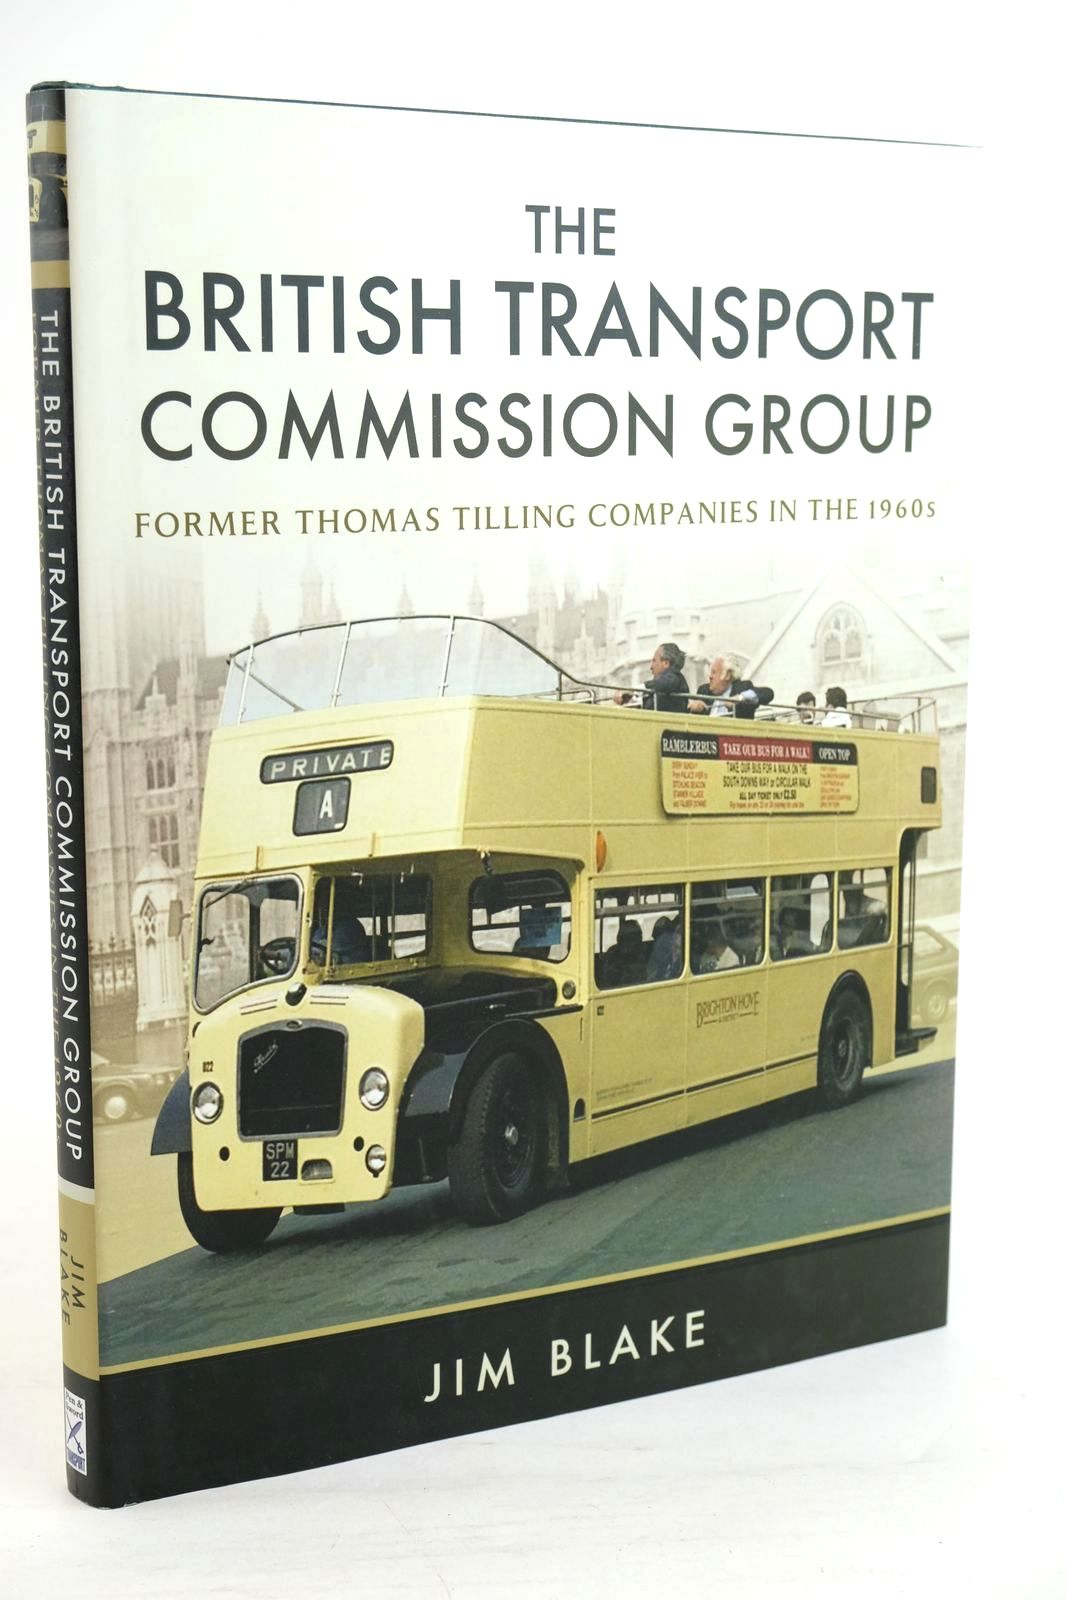 Photo of THE BRITISH TRANSPORT COMMISSION GROUP: FORMER THOMAS TILLING COMPANIES IN THE 1960S written by Blake, Jim published by Pen & Sword Transport (STOCK CODE: 1320177)  for sale by Stella & Rose's Books